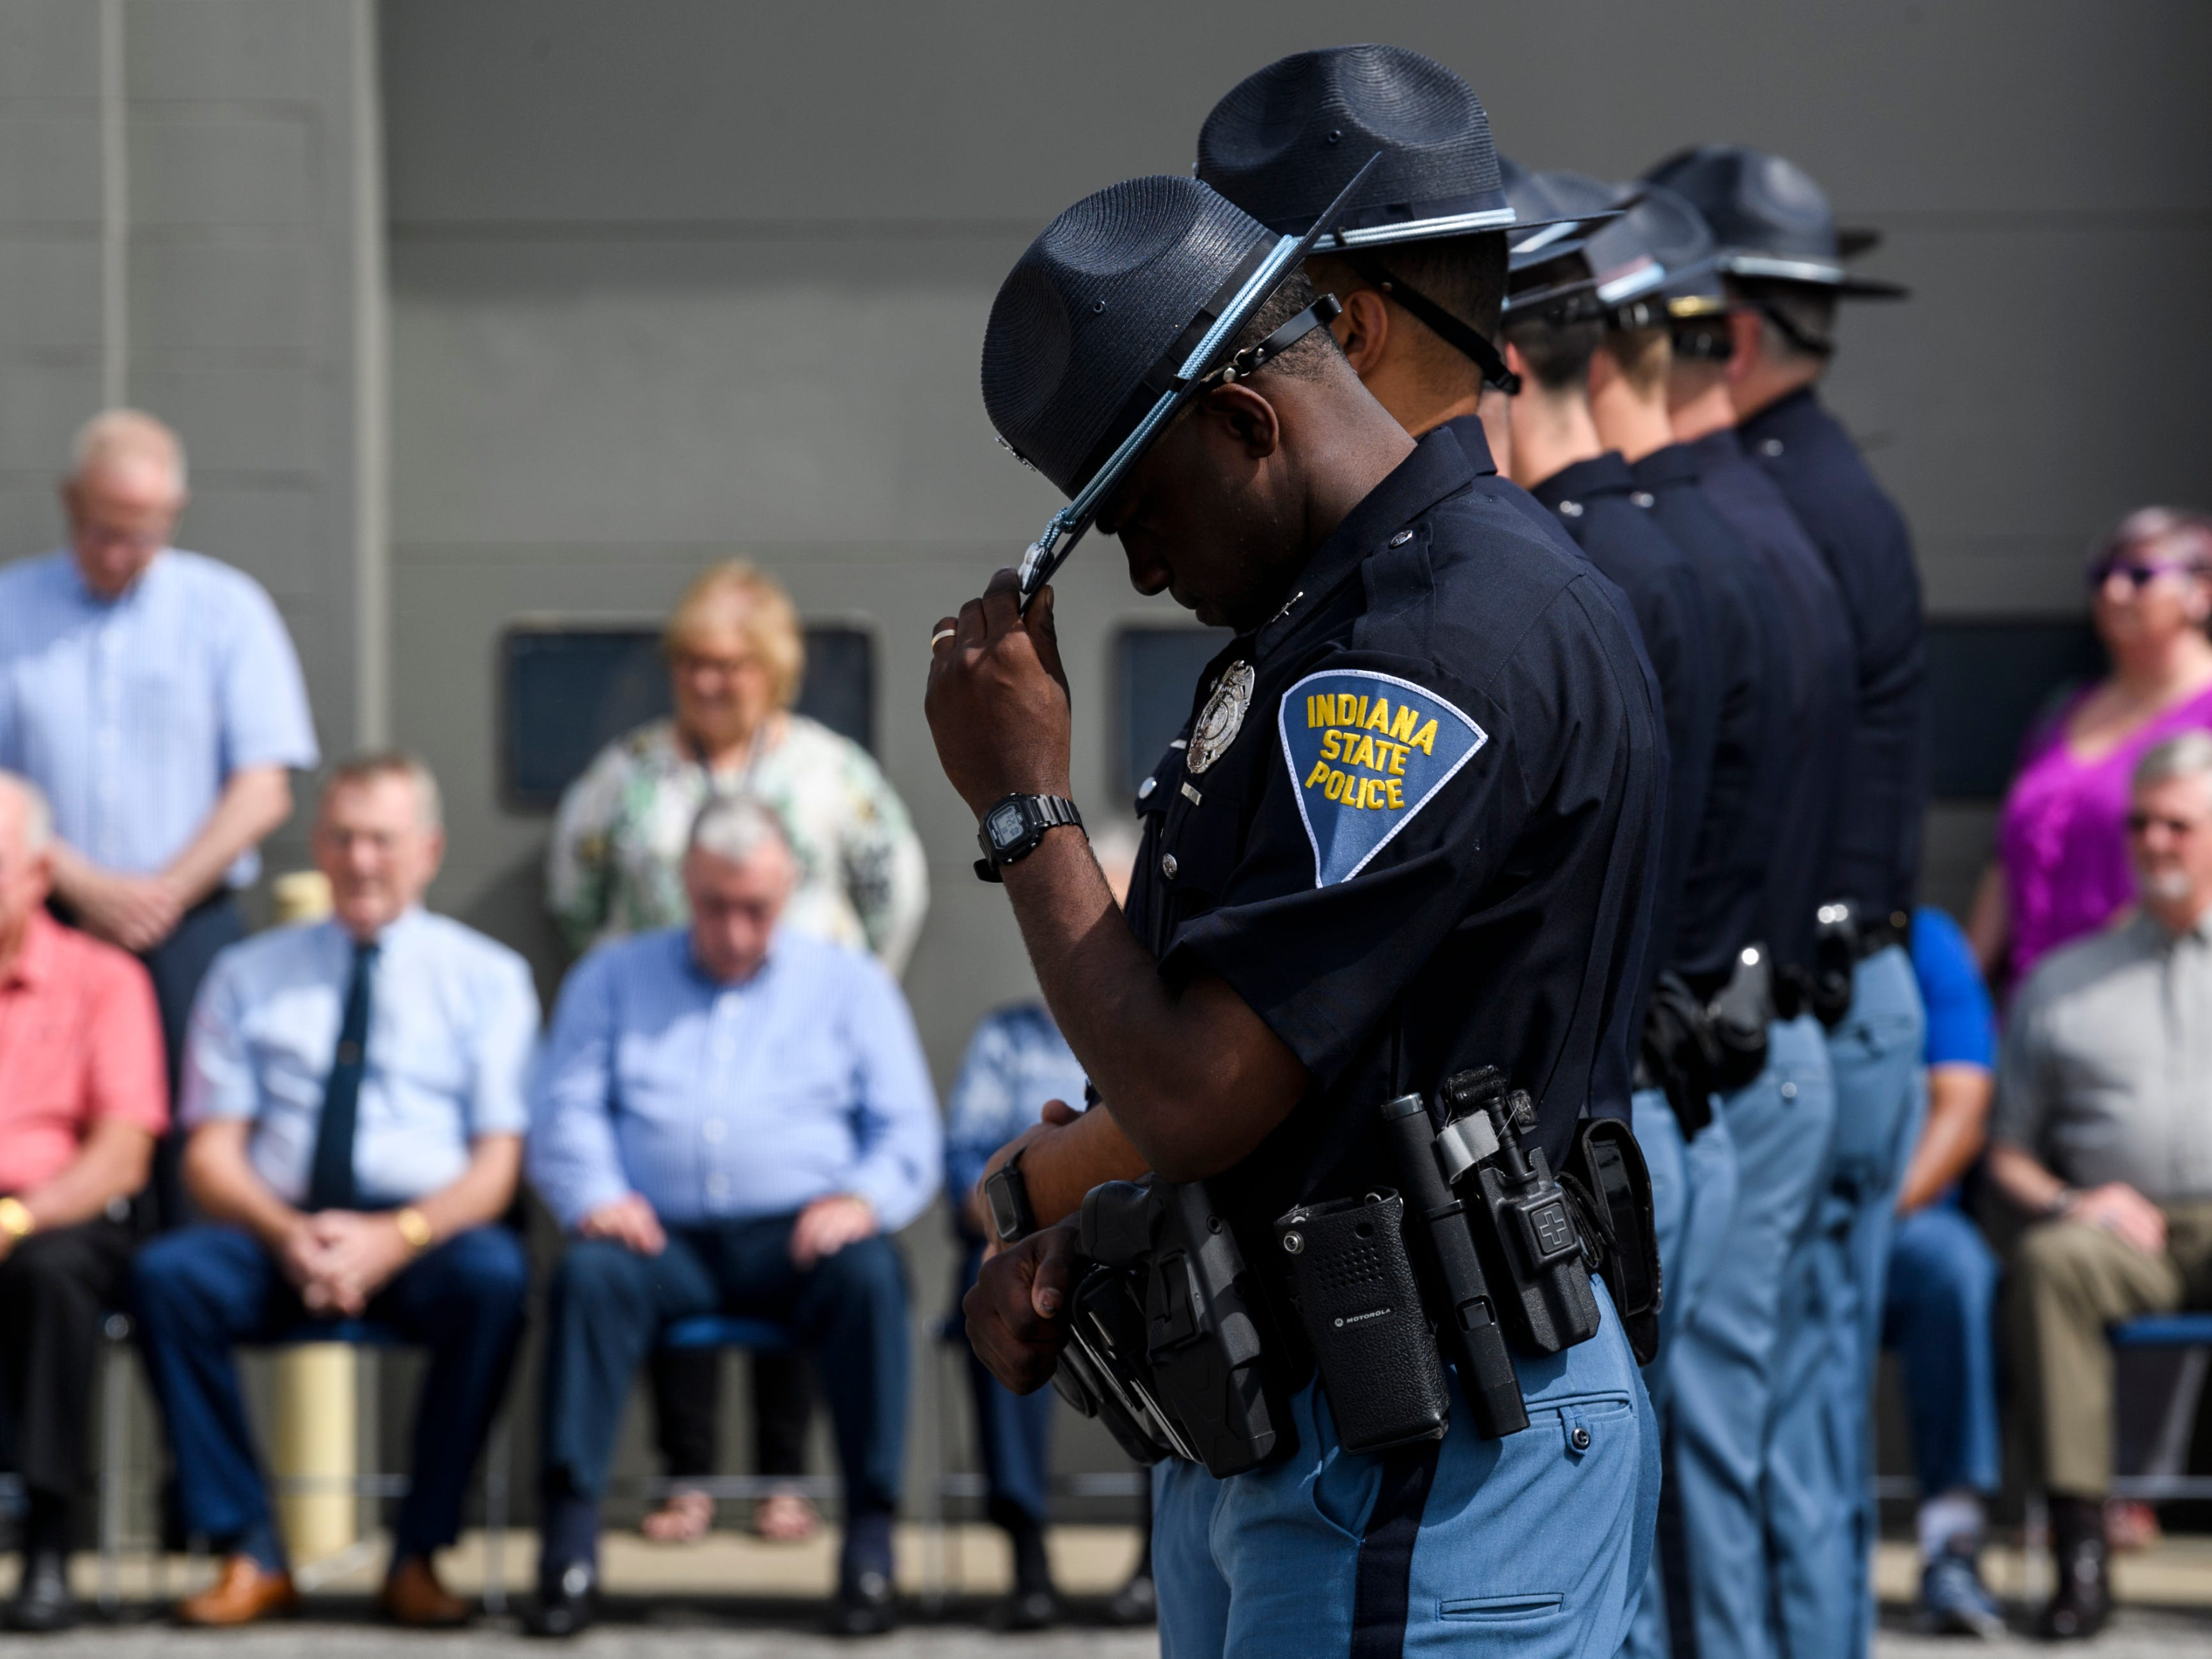 Trooper Trey Stewart, front center, tips his hat down as he listens to the names of 46 Indiana State Police officers who have died in the line of duty since 1933 during the annual ISP Memorial Service at the Evansville post, Wednesday morning, May 8, 2019.